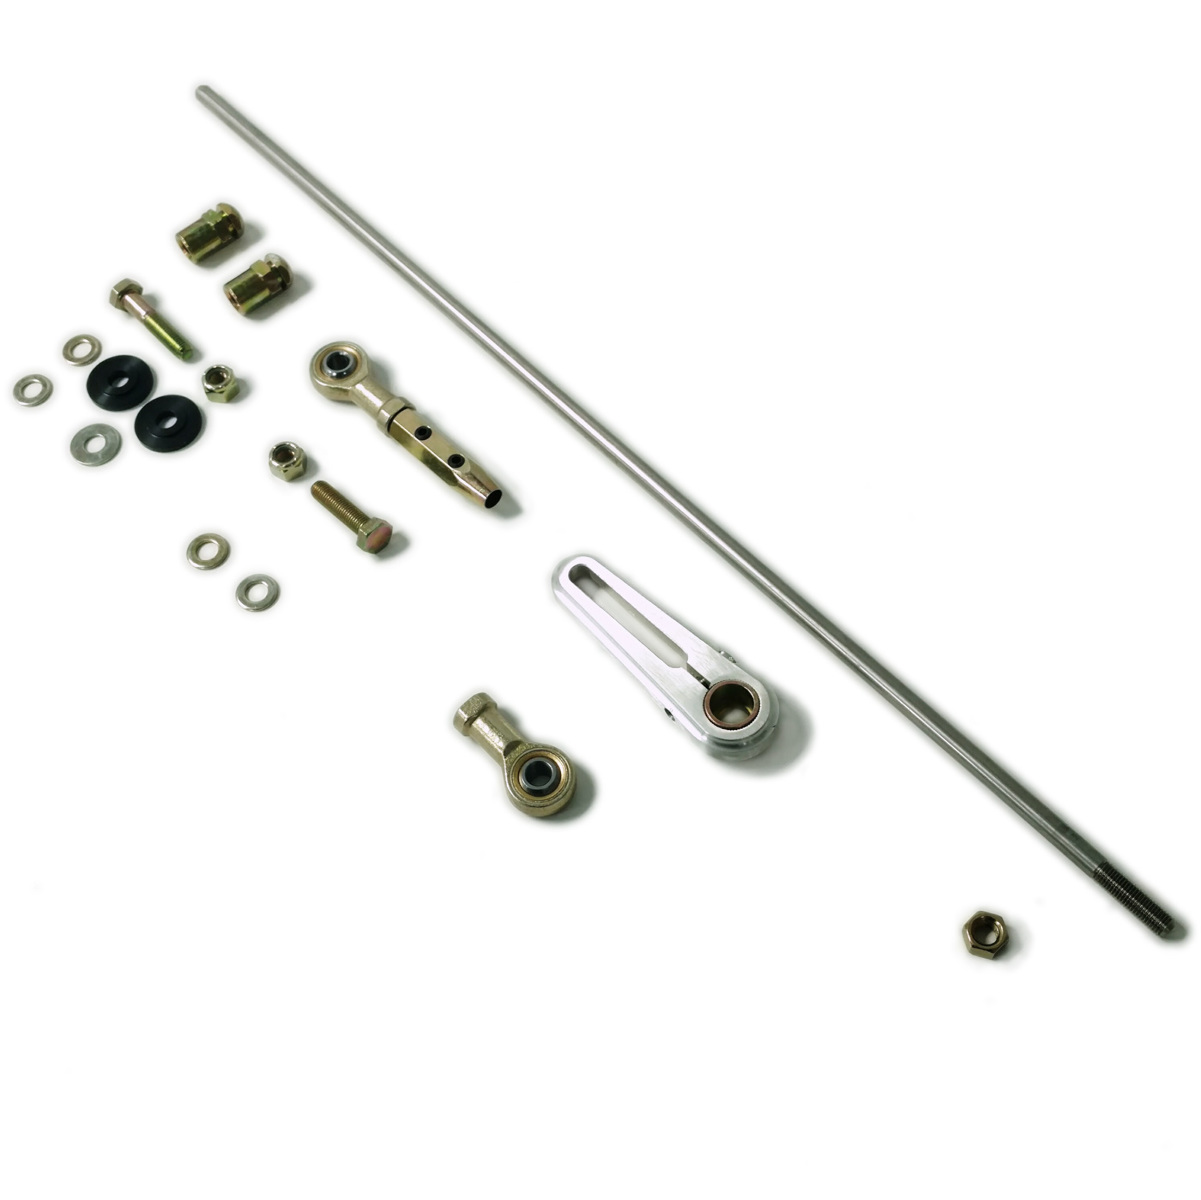 Universal Adjustable Column Shift Linkage Kit